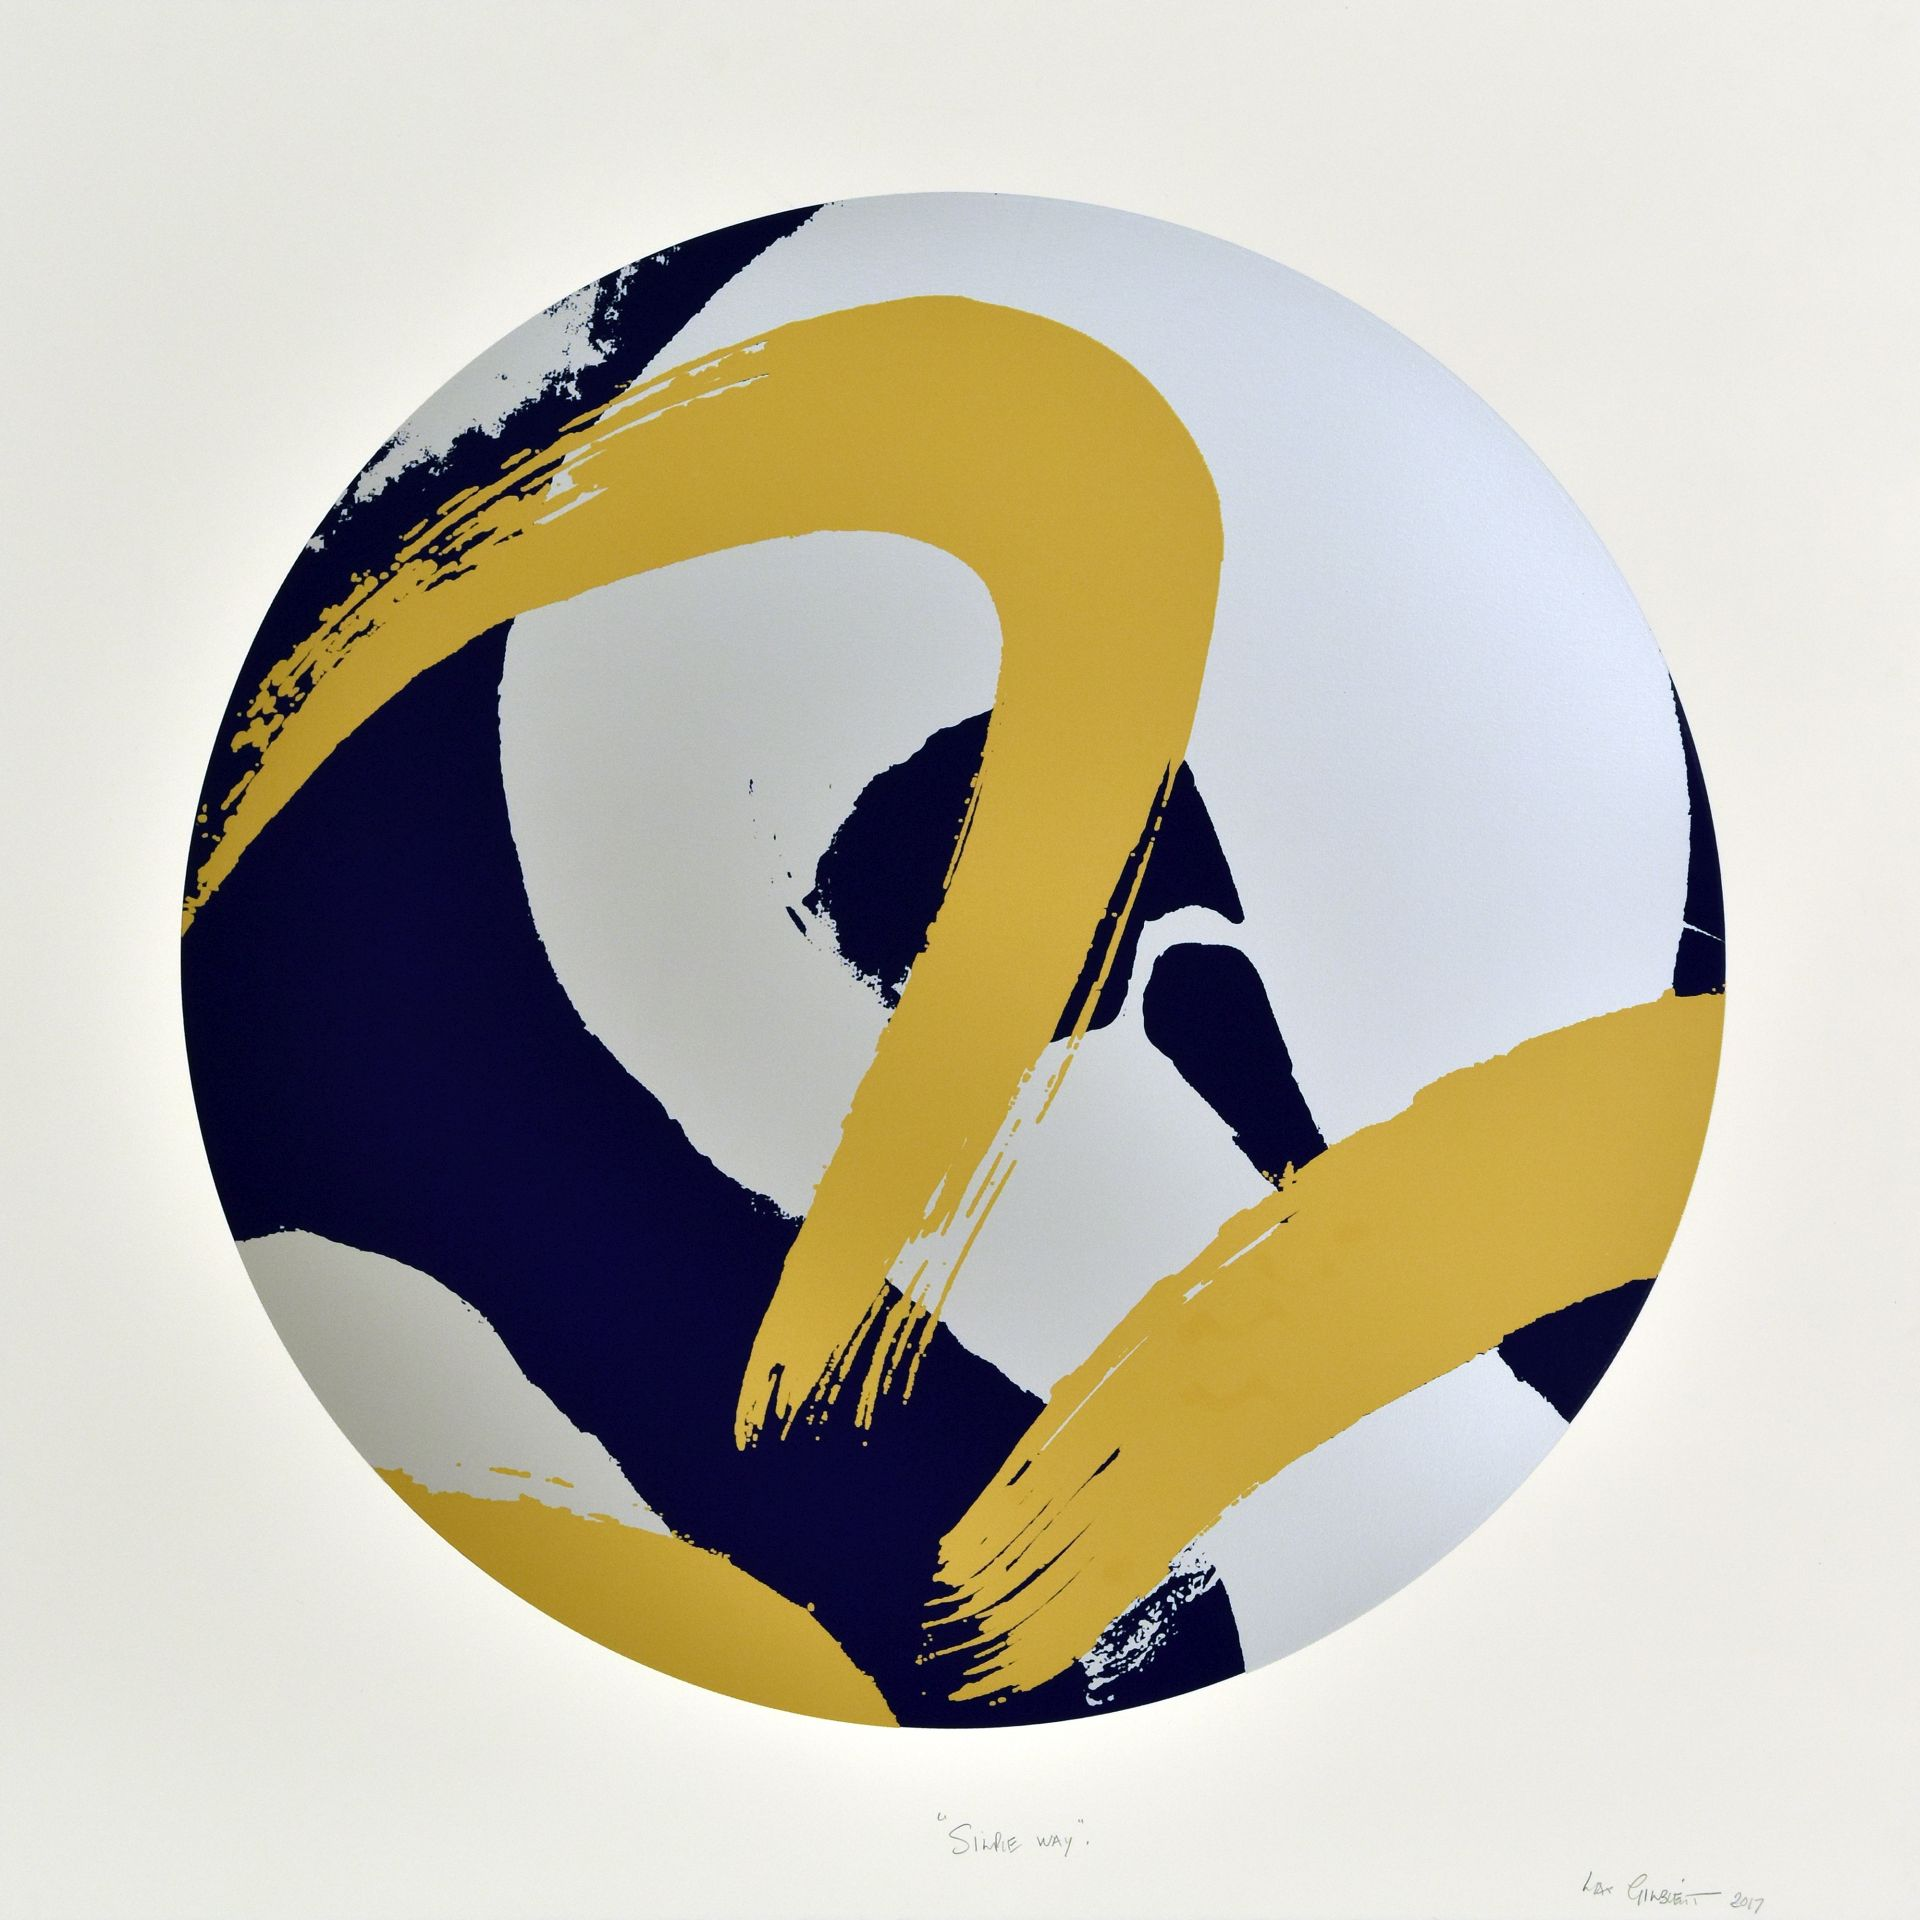 New Max Gimblett Screenprints